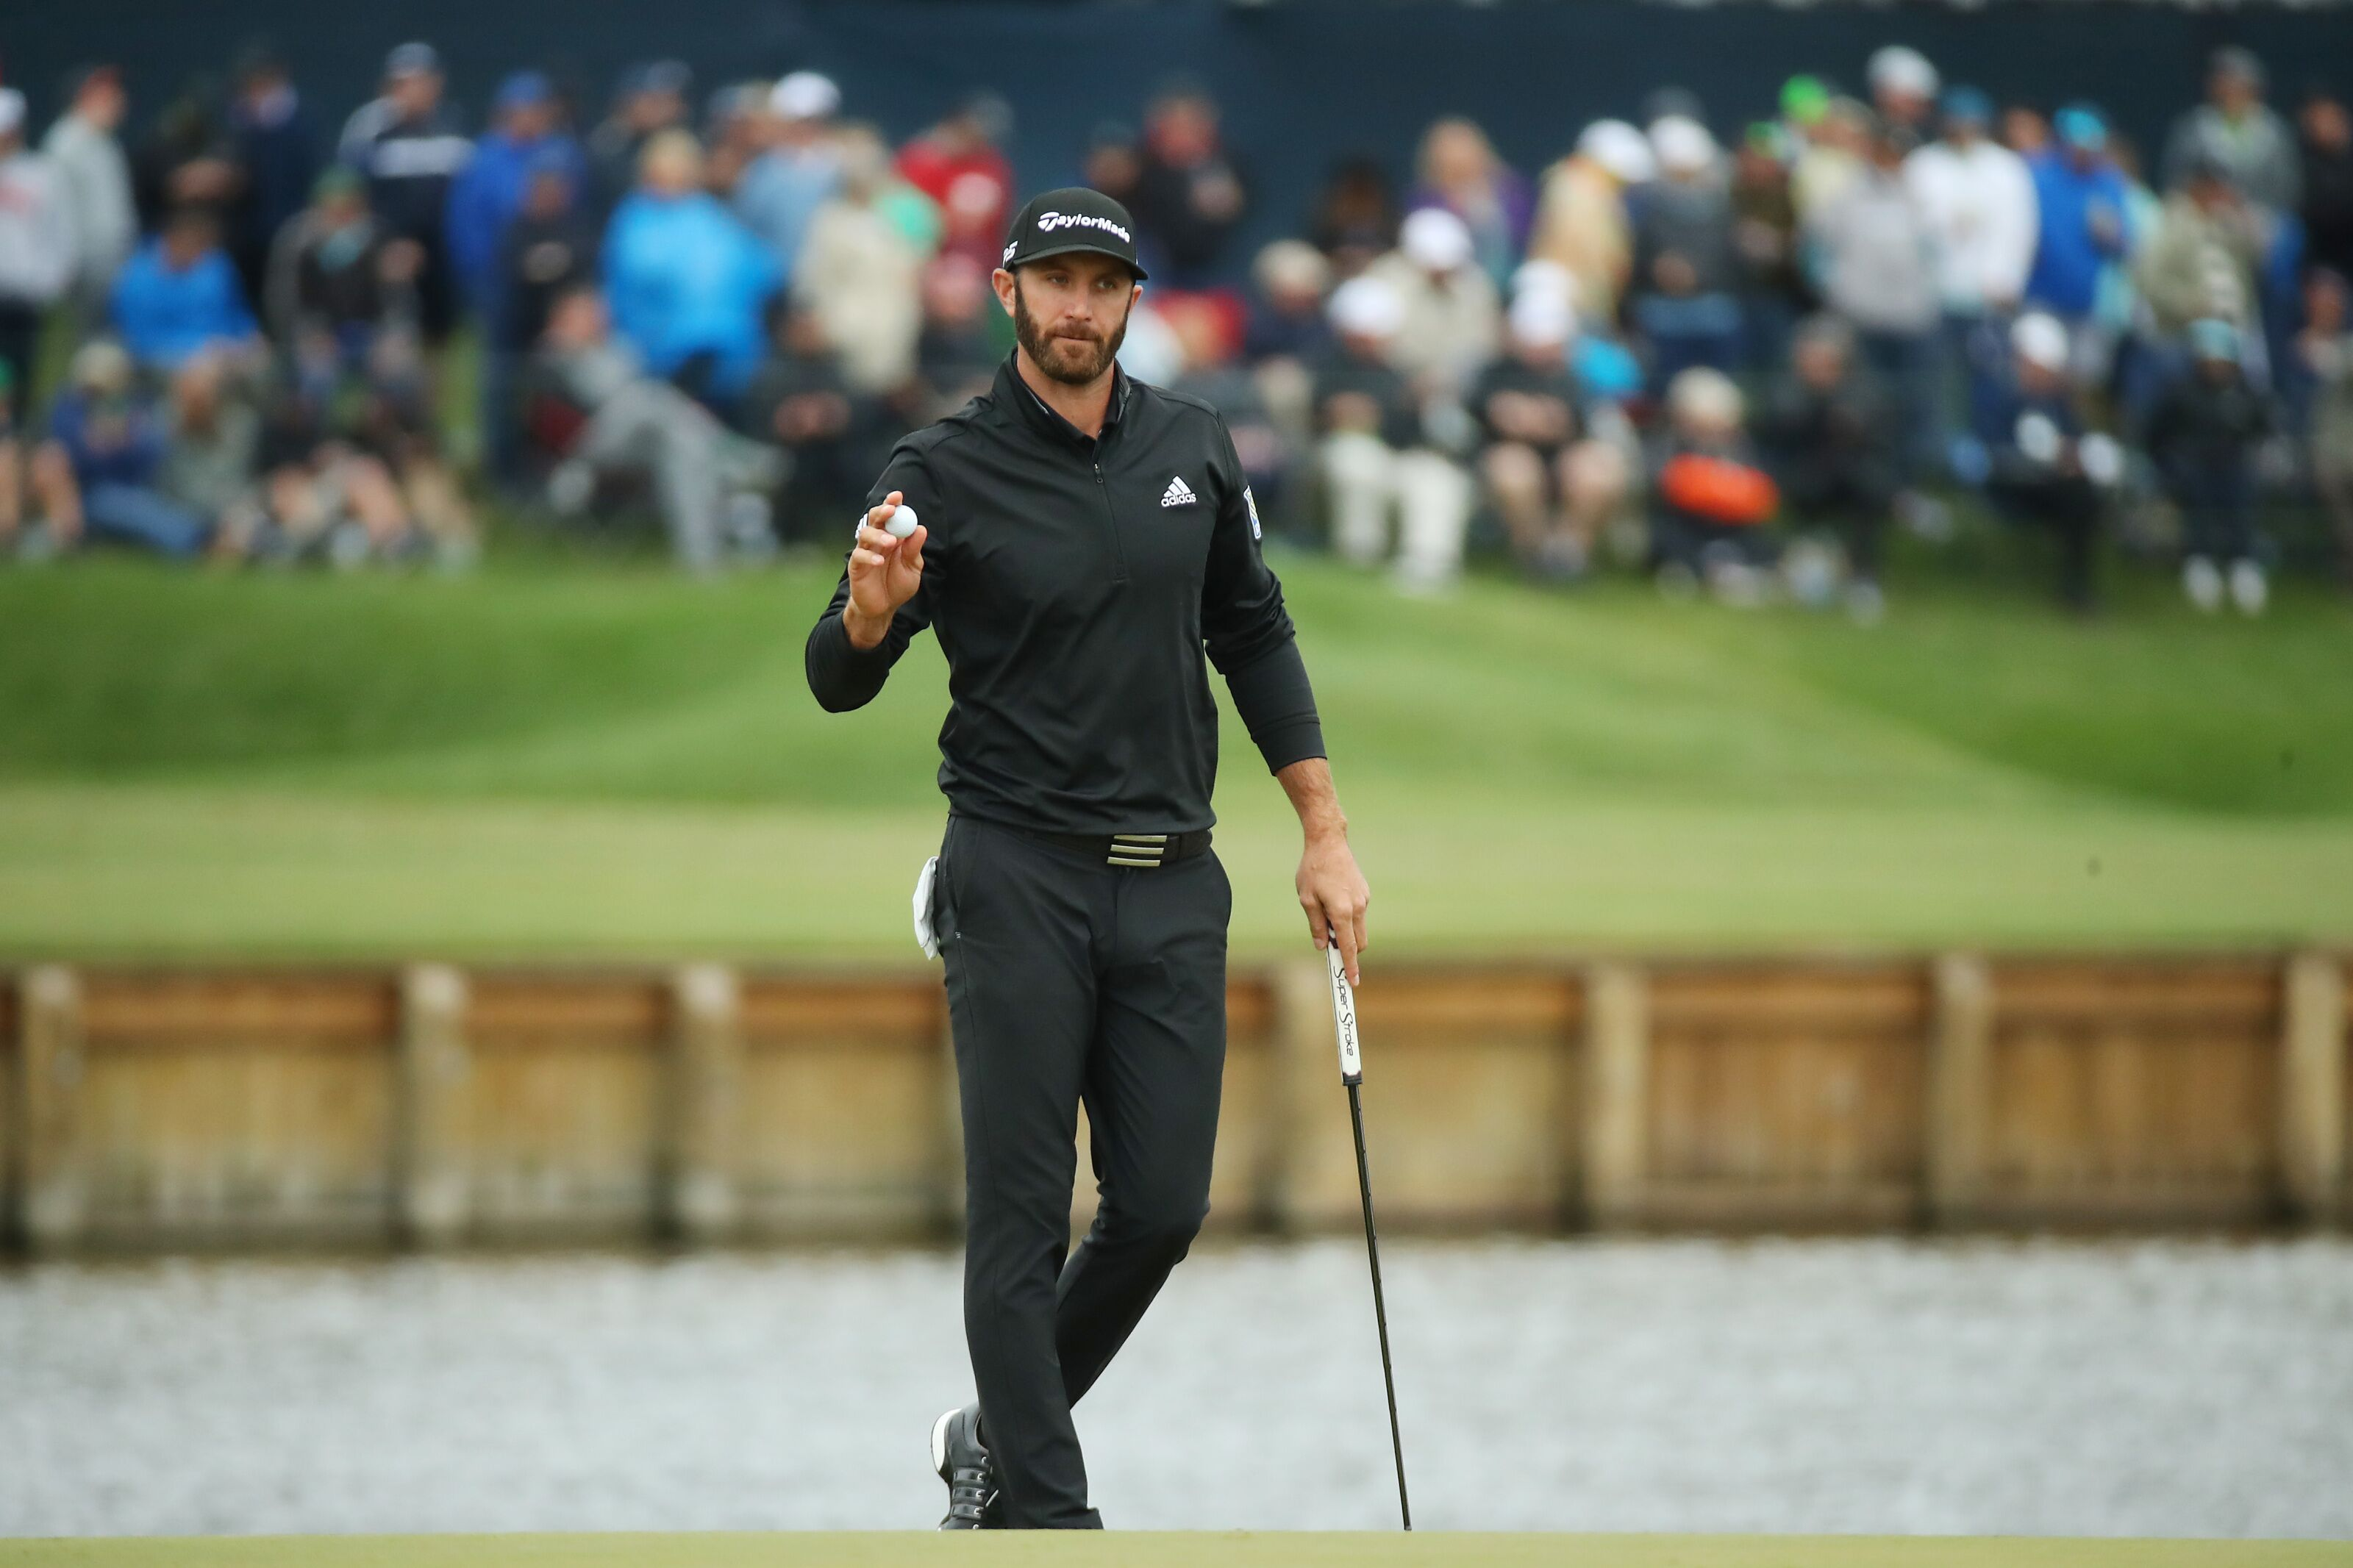 Dustin Johnson focuses on results, not stats, with Masters looming